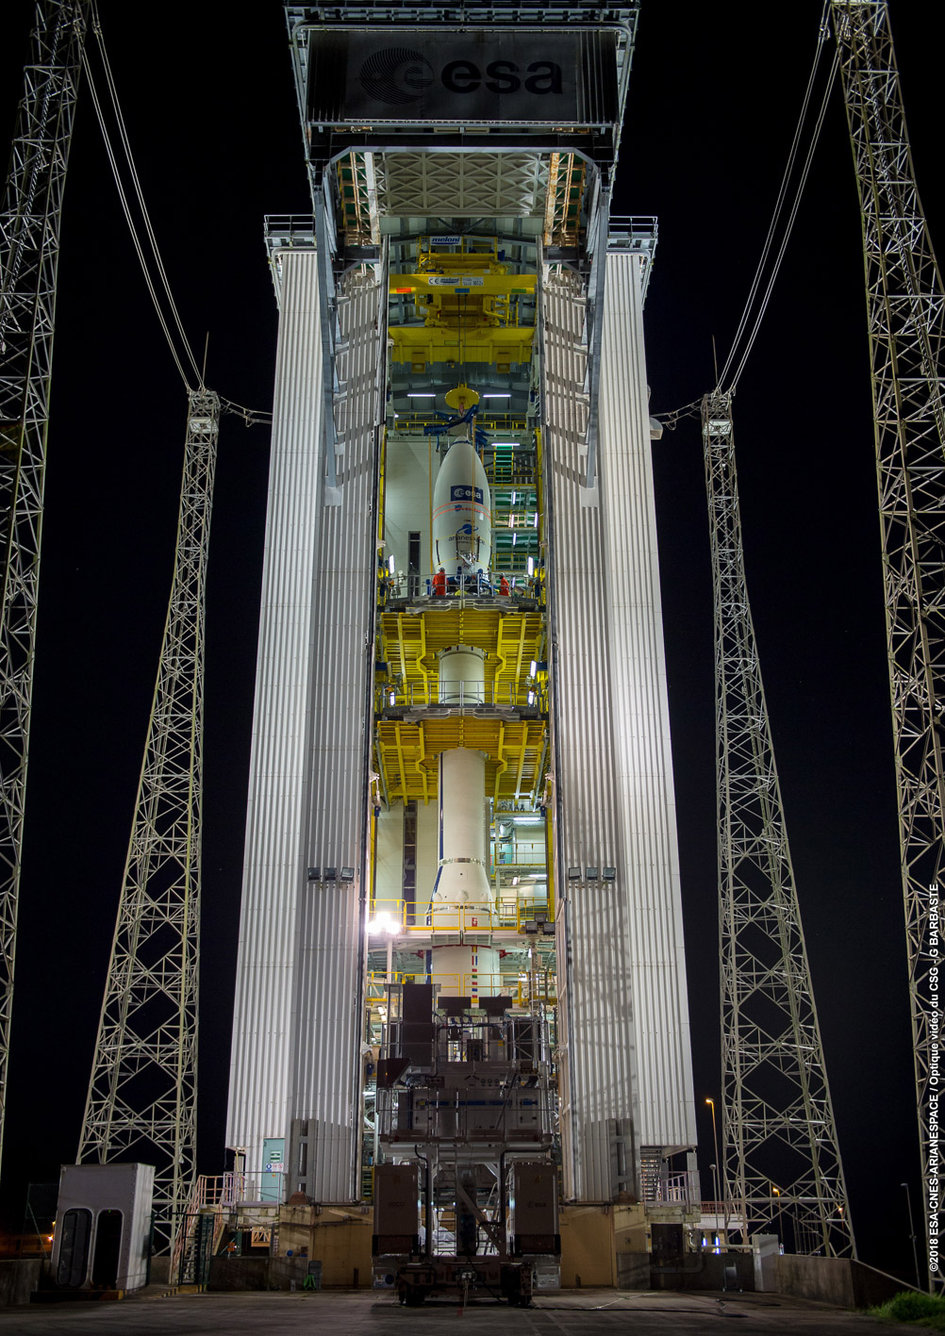 Aeolus in the launch tower